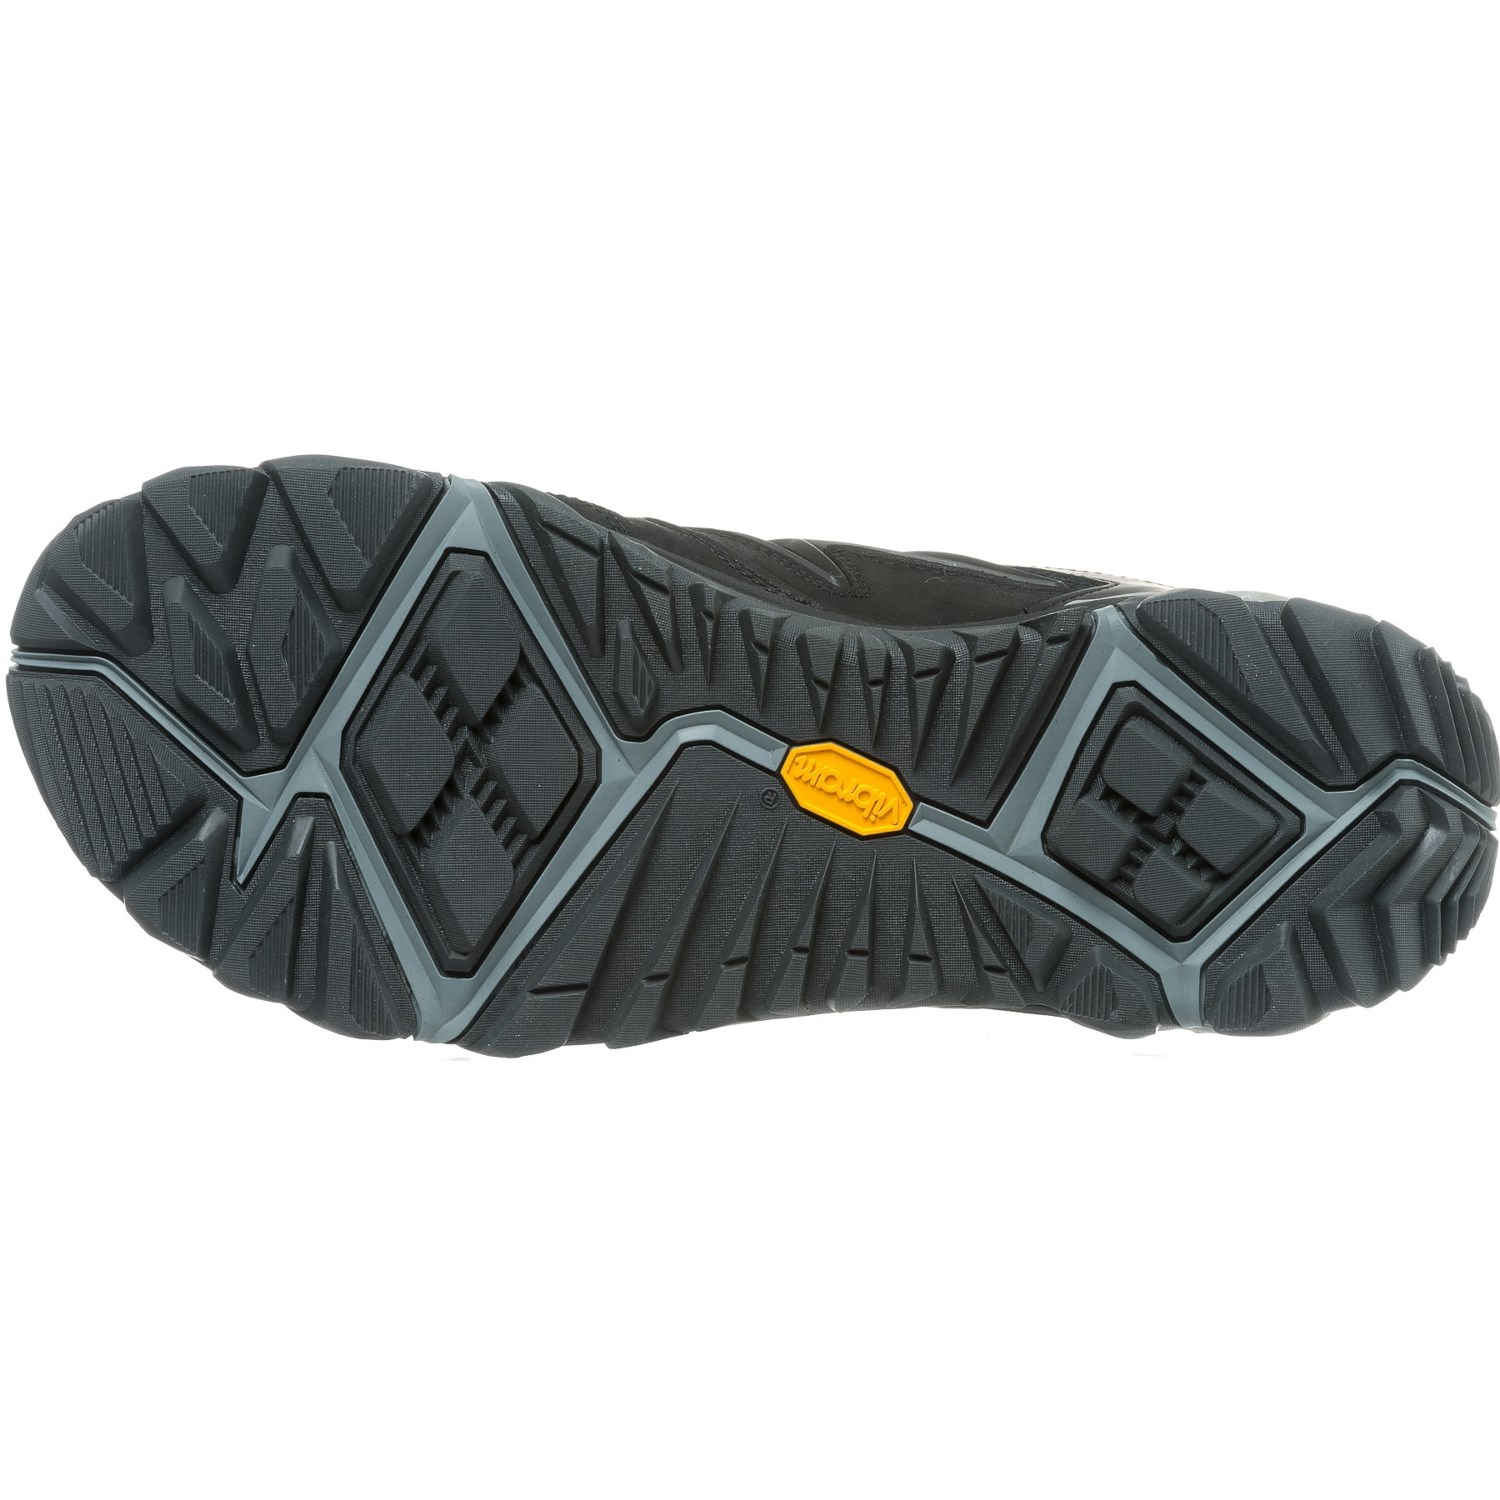 c544a029b119 Merrell All Out Blaze 2 Hiking Shoes (For Men) - Save 53%